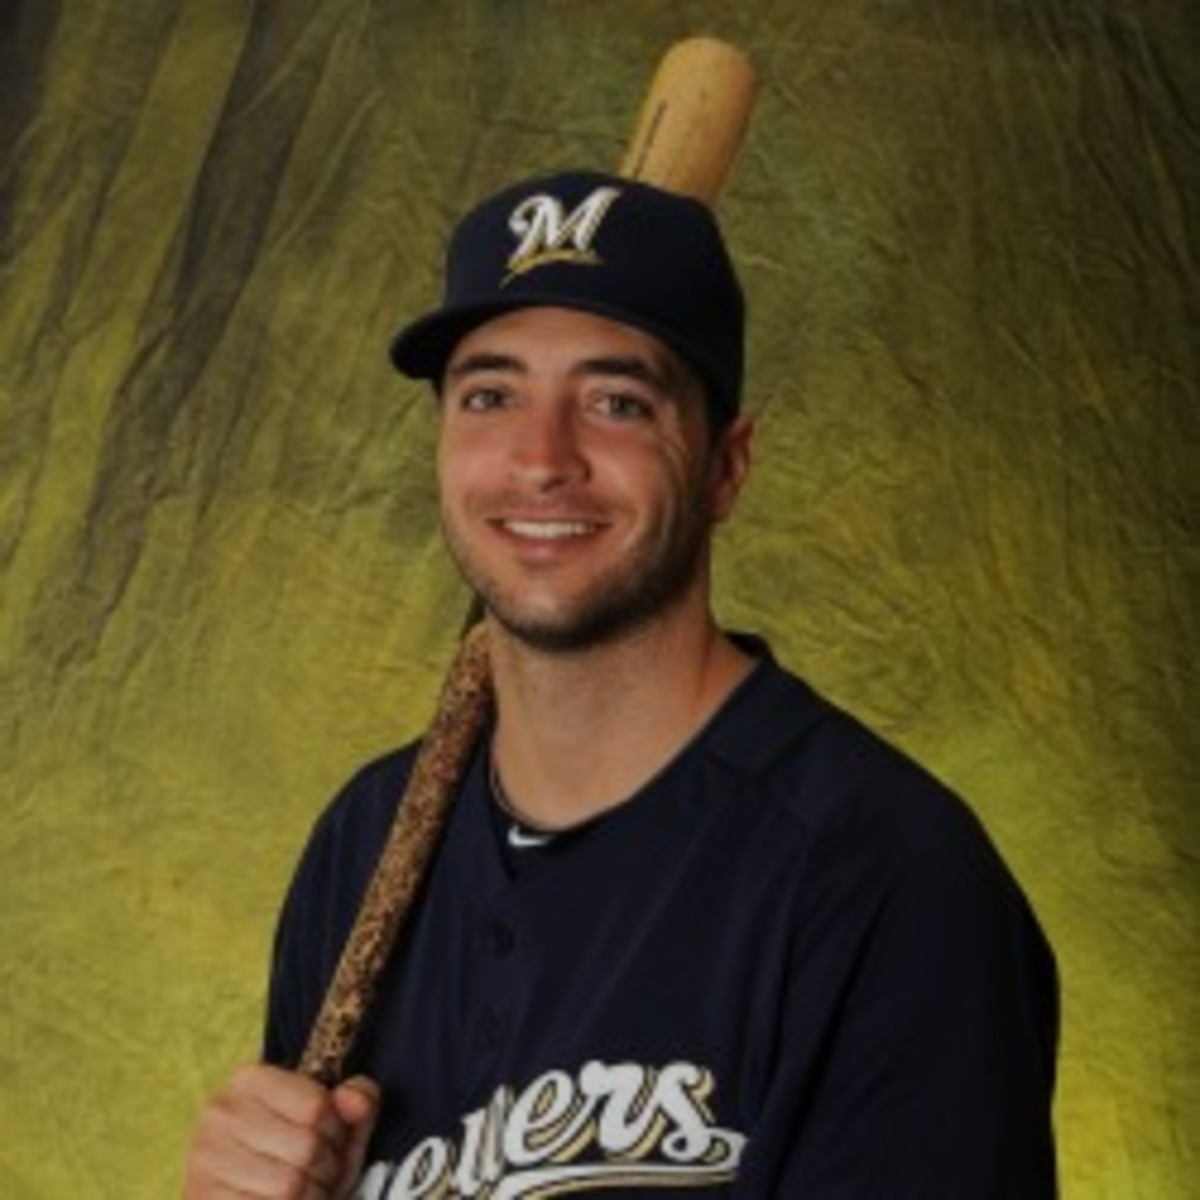 MLB says it is not targeting Brewers slugger Ryan Braun for use of PEDs. (Rich Pilling/Getty Images)